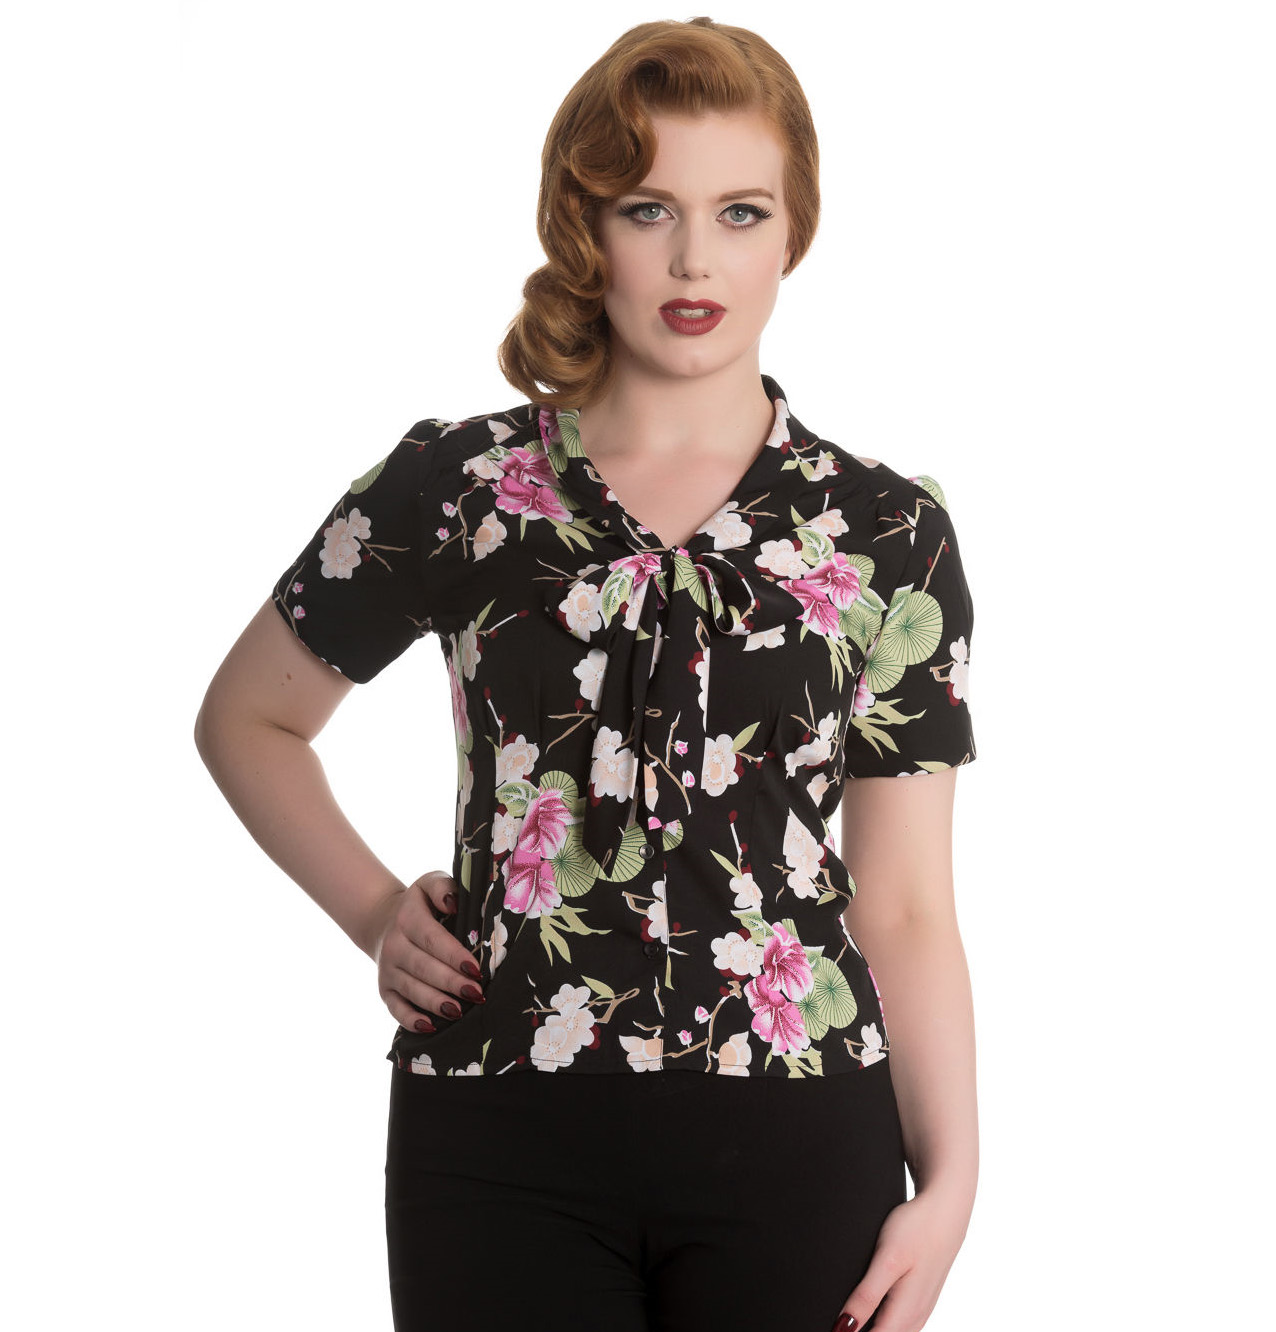 Hell-Bunny-Shirt-Top-40s-50s-Black-FREYA-Pink-Flowers-Floral-Blouse-All-Sizes thumbnail 3